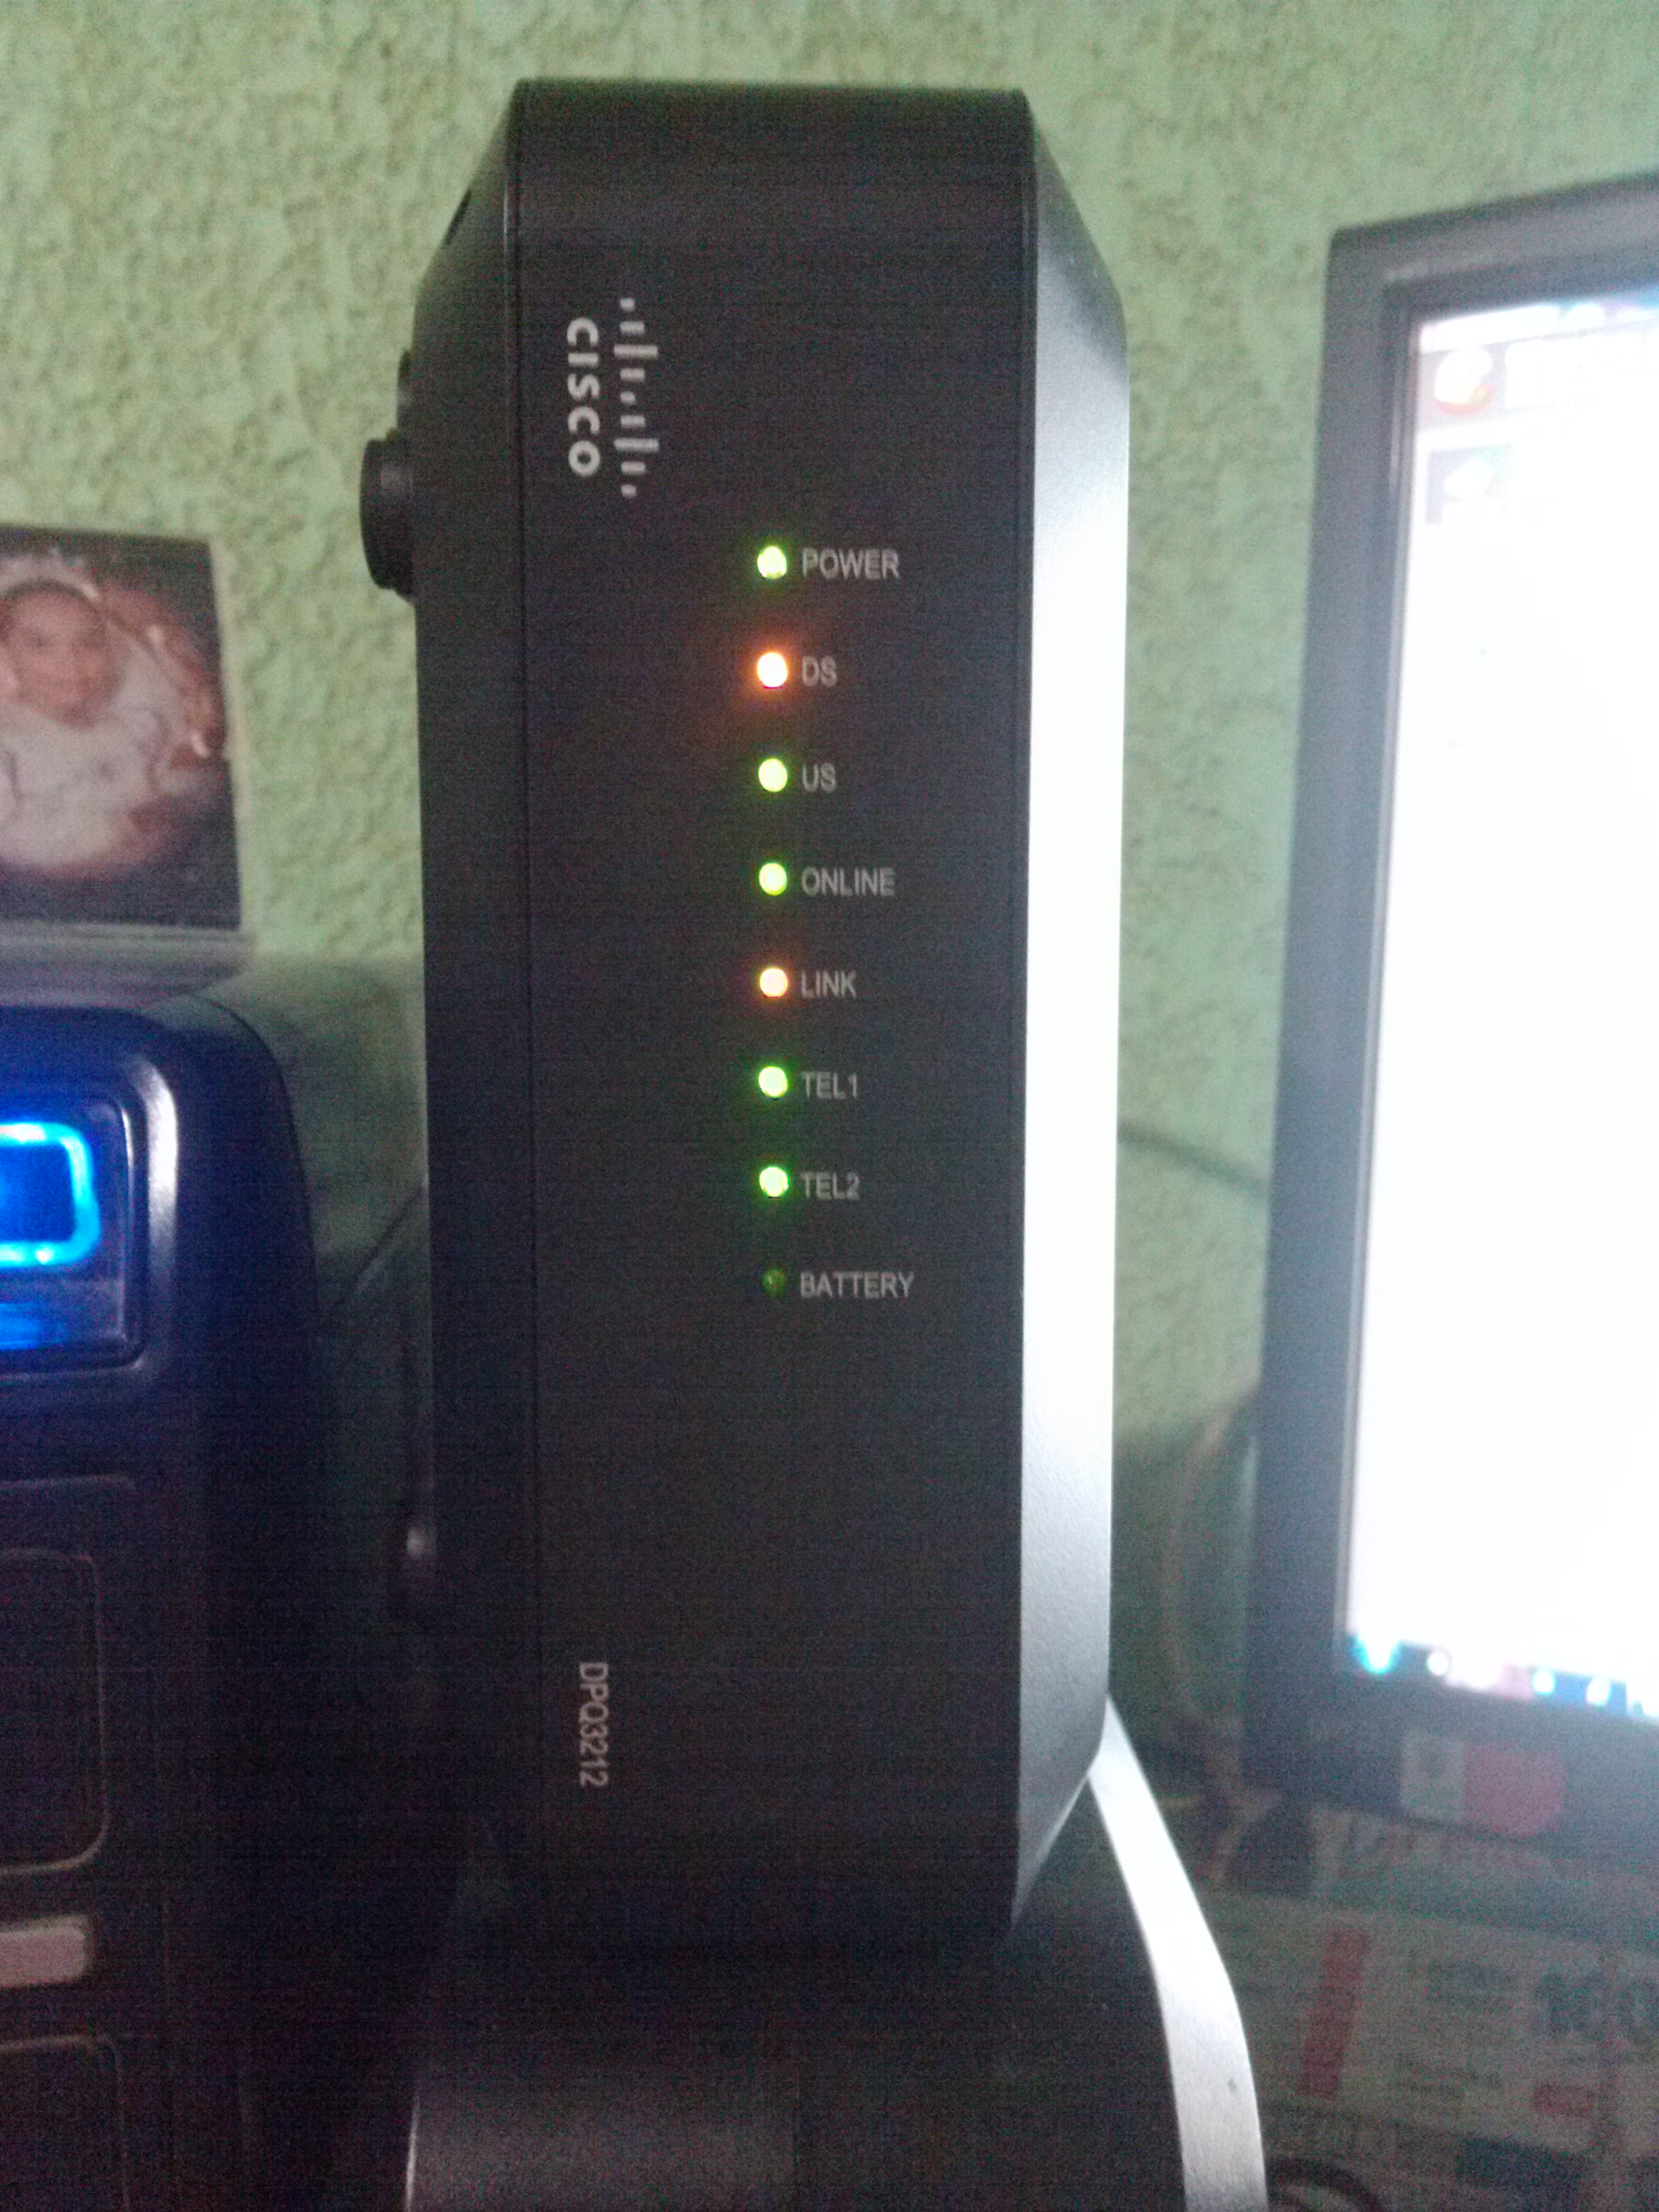 Leds Amber In My Dpq3212 Small Business Routers Cisco